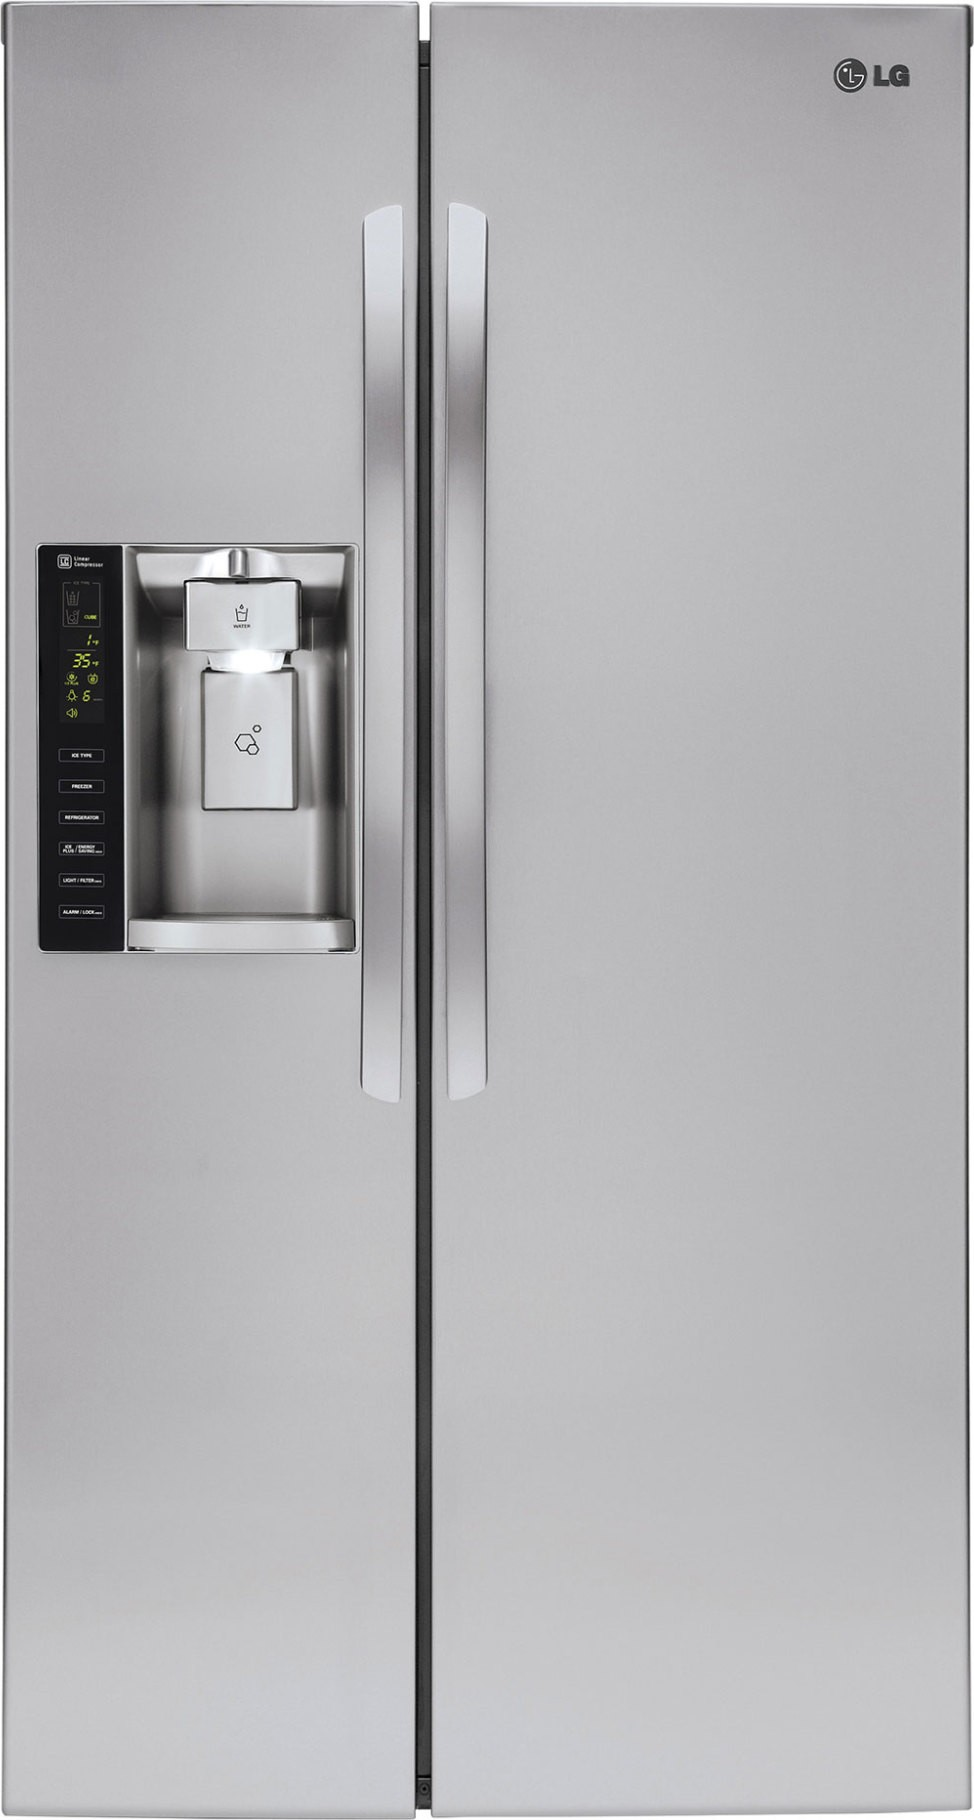 Lg Lsxc22336s 22 Cu Ft Side By Side Refrigerator Counter